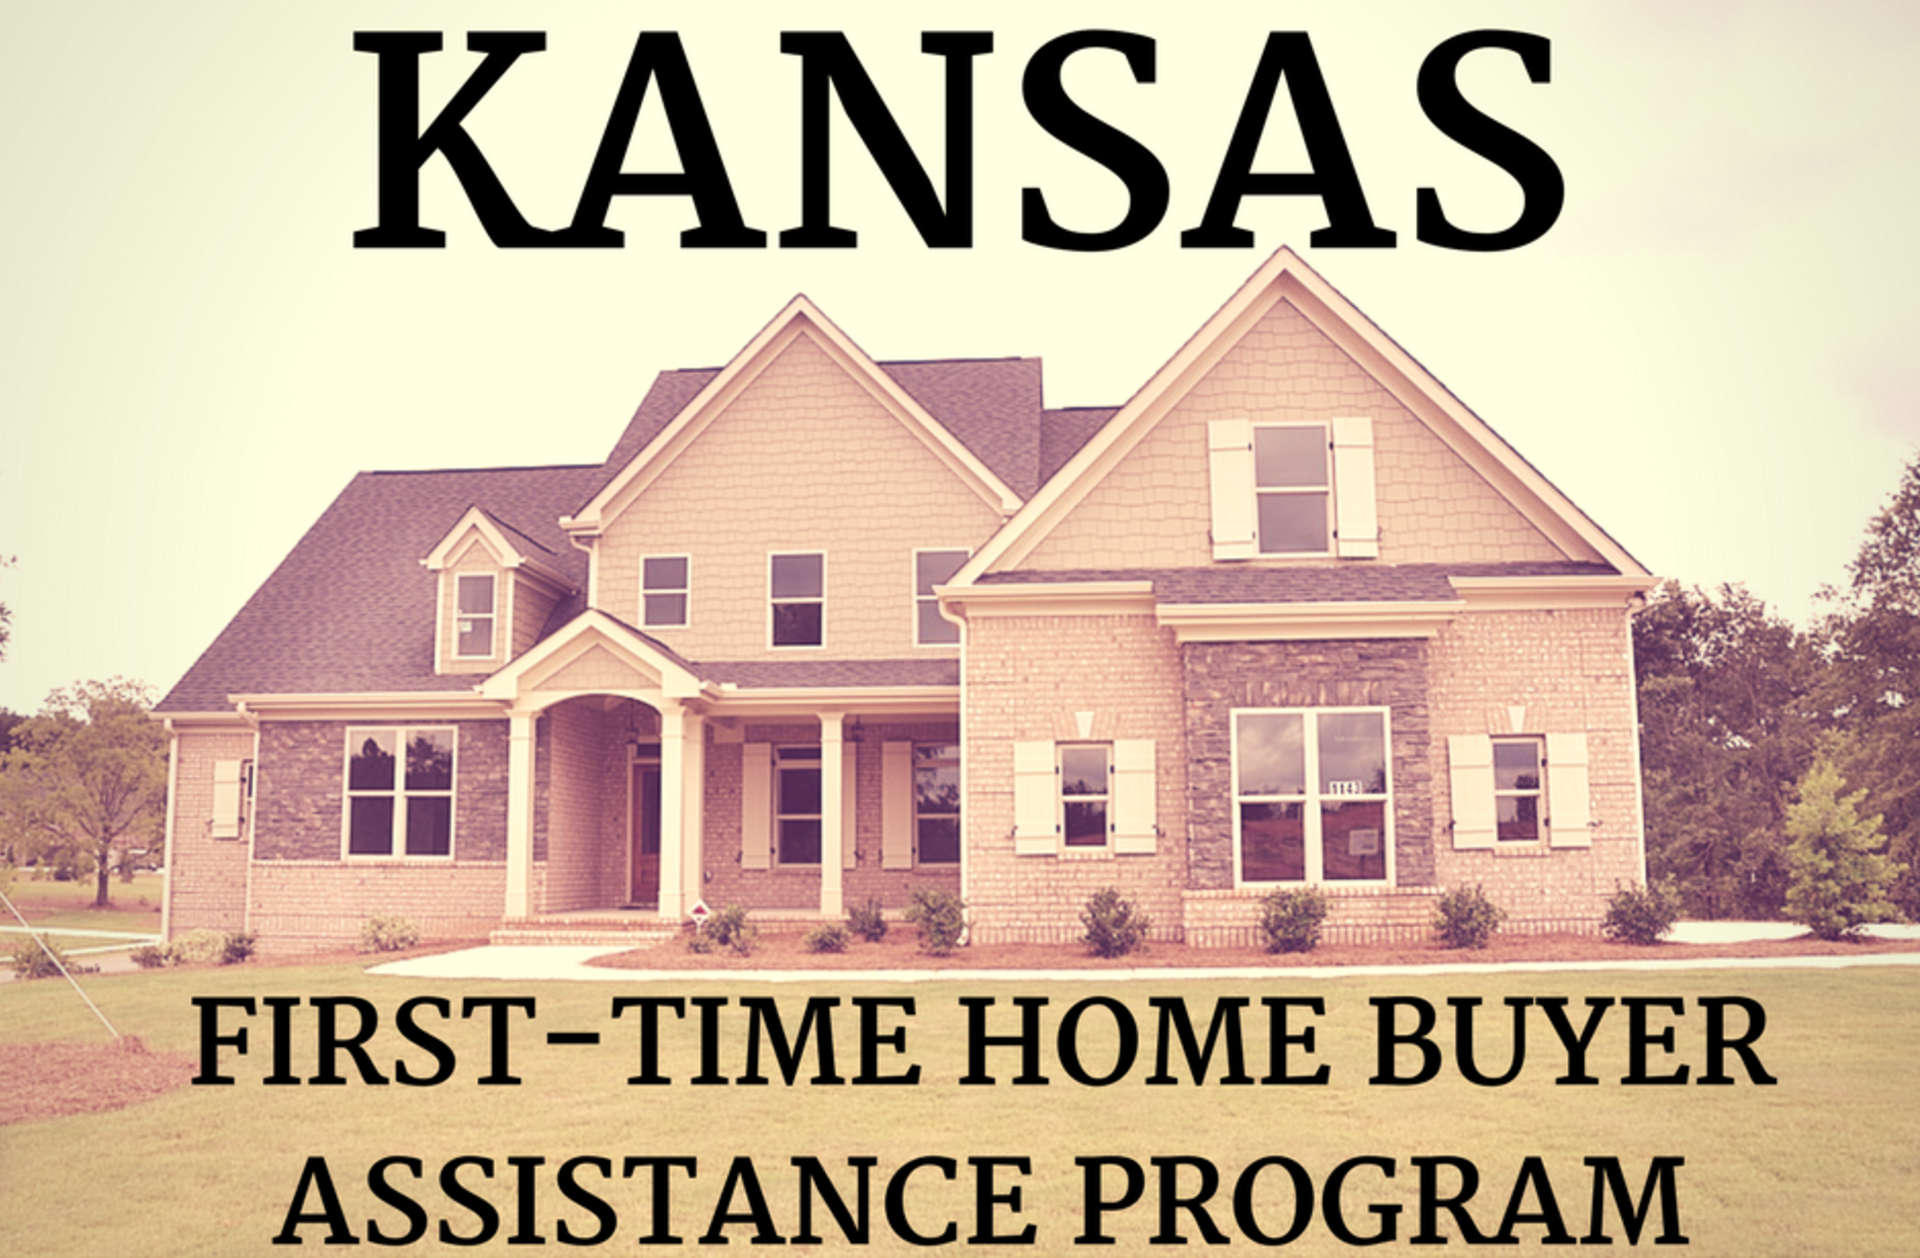 First-Time Home Buyer Assistance Program